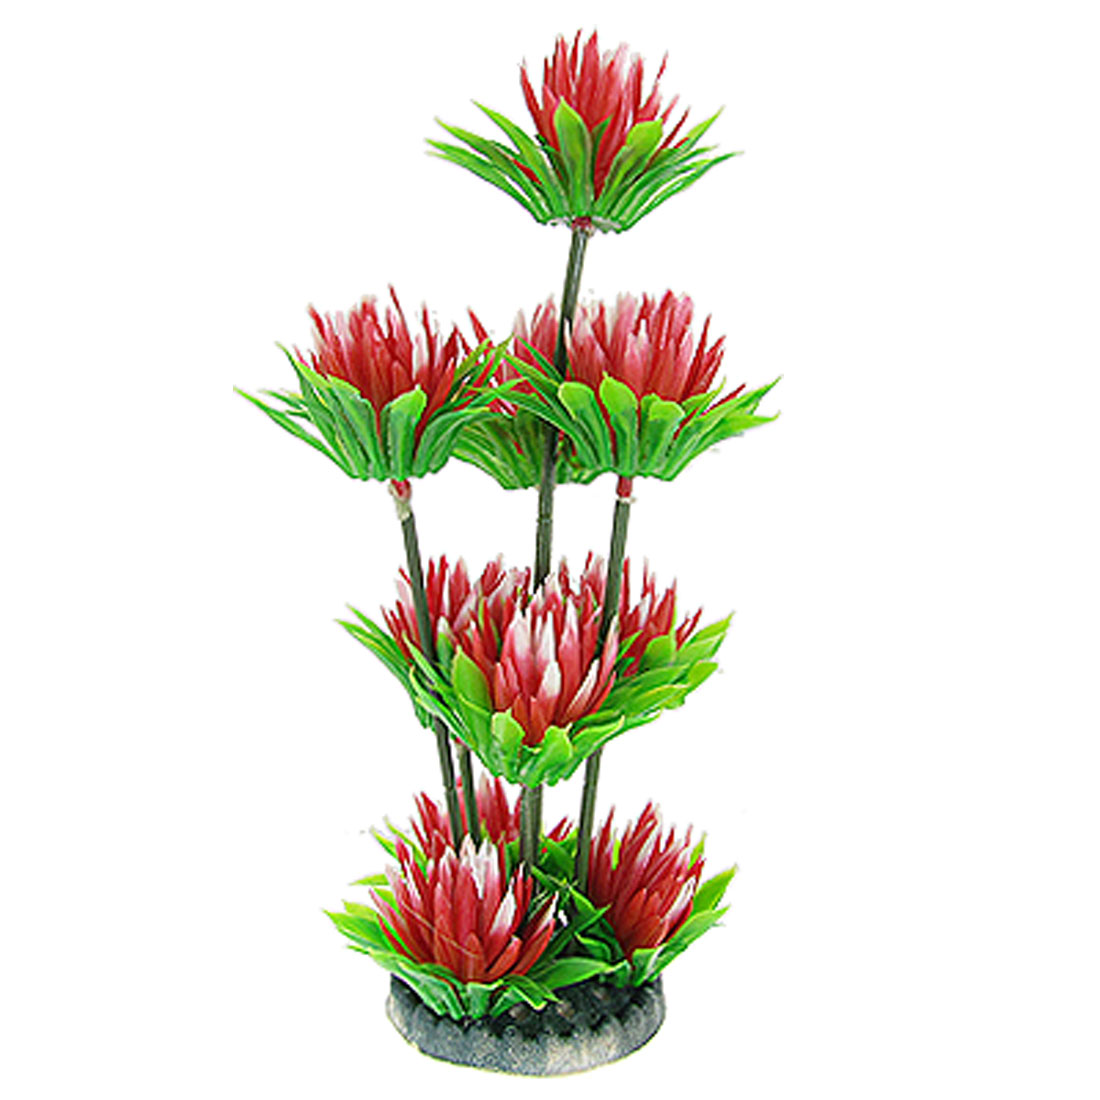 "9 3/5"" Plastic Chrysanthemum Floral Water Plant Ornament Red Green for Aquarium Tank"